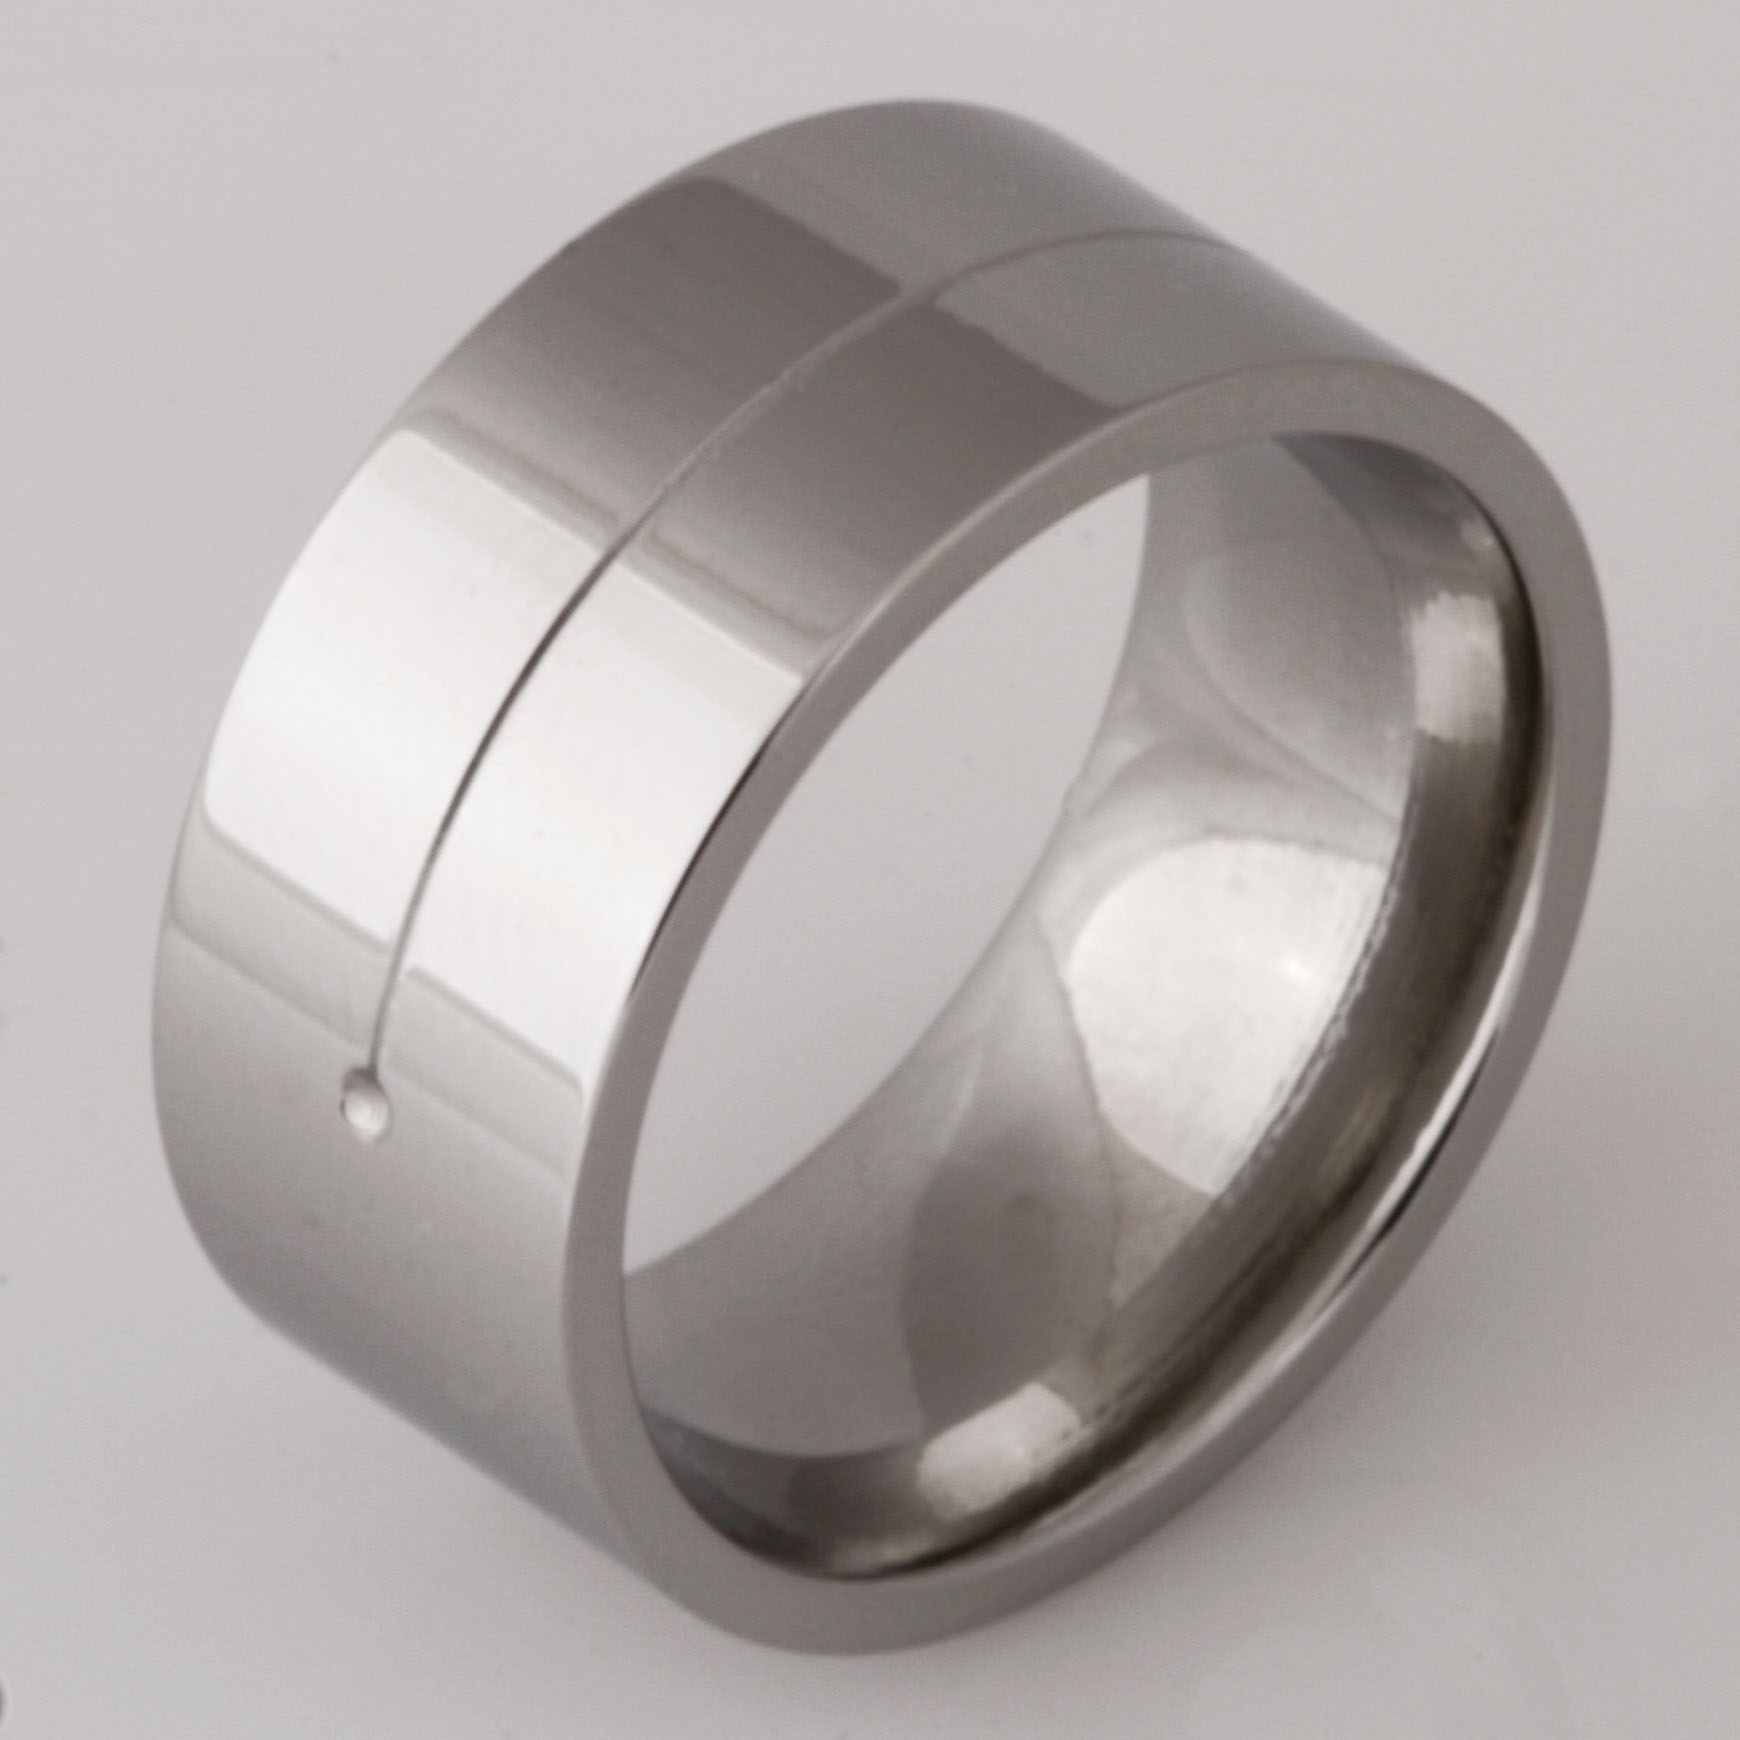 Gents stainless steel wedding ring